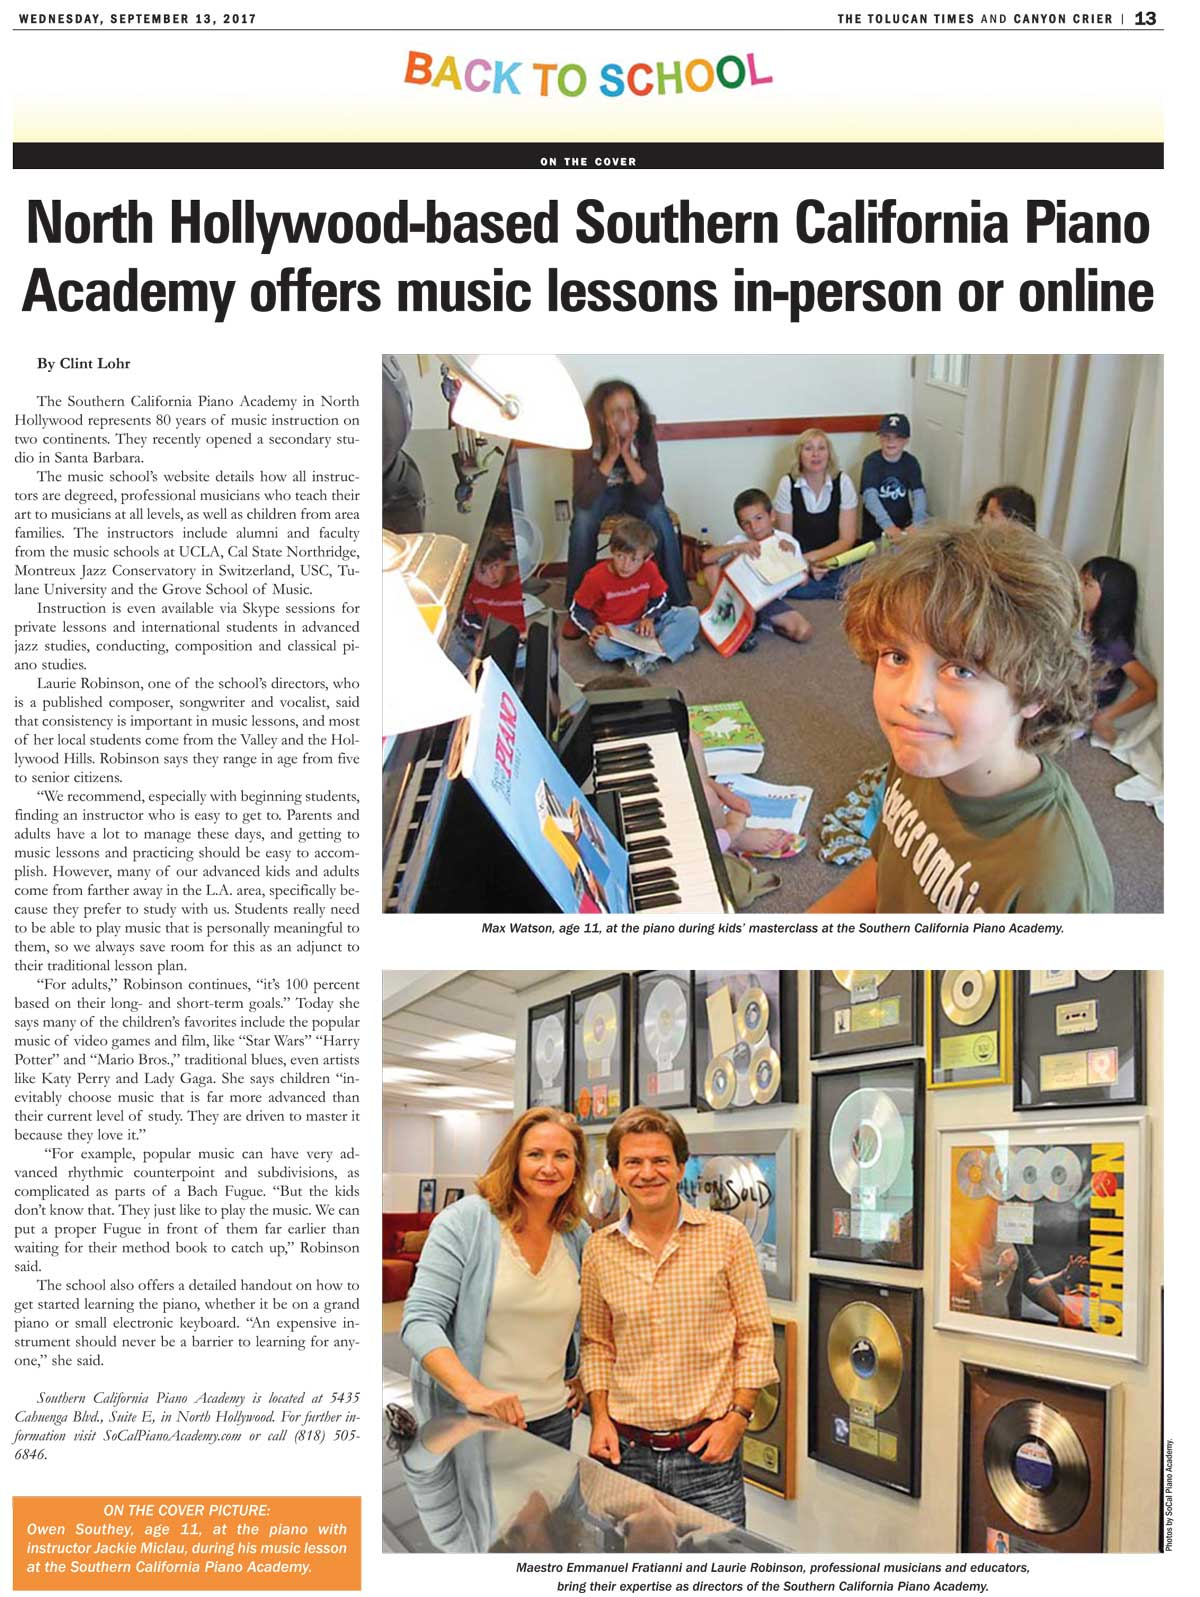 SoCal Piano Academy in Tolucan Times